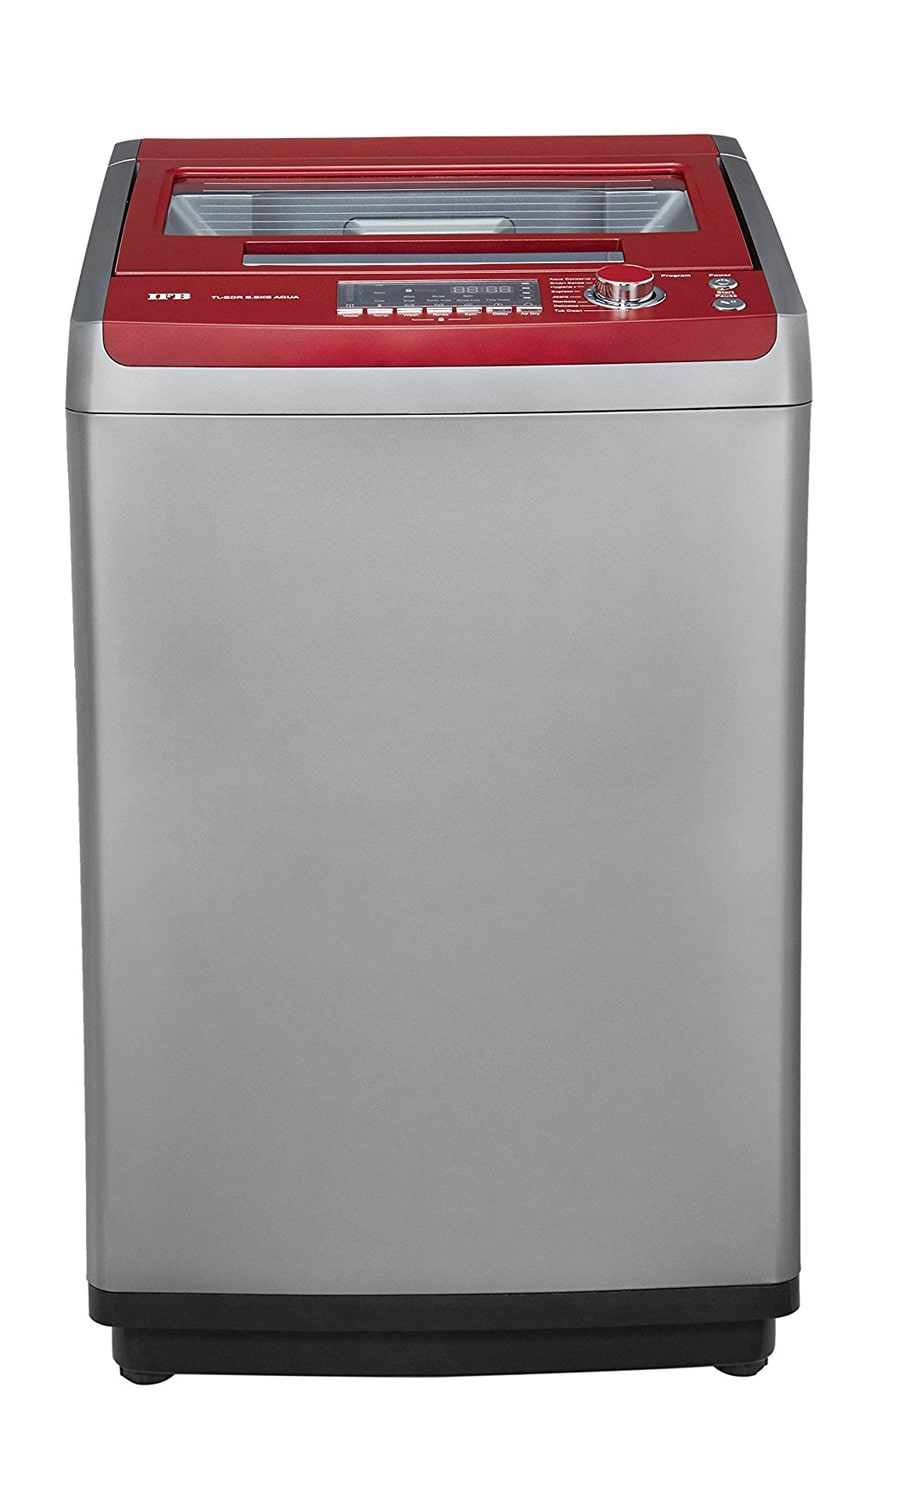 IFB TL 65SDR AQUA 6.5KG Fully Automatic Top Load Washing Machine